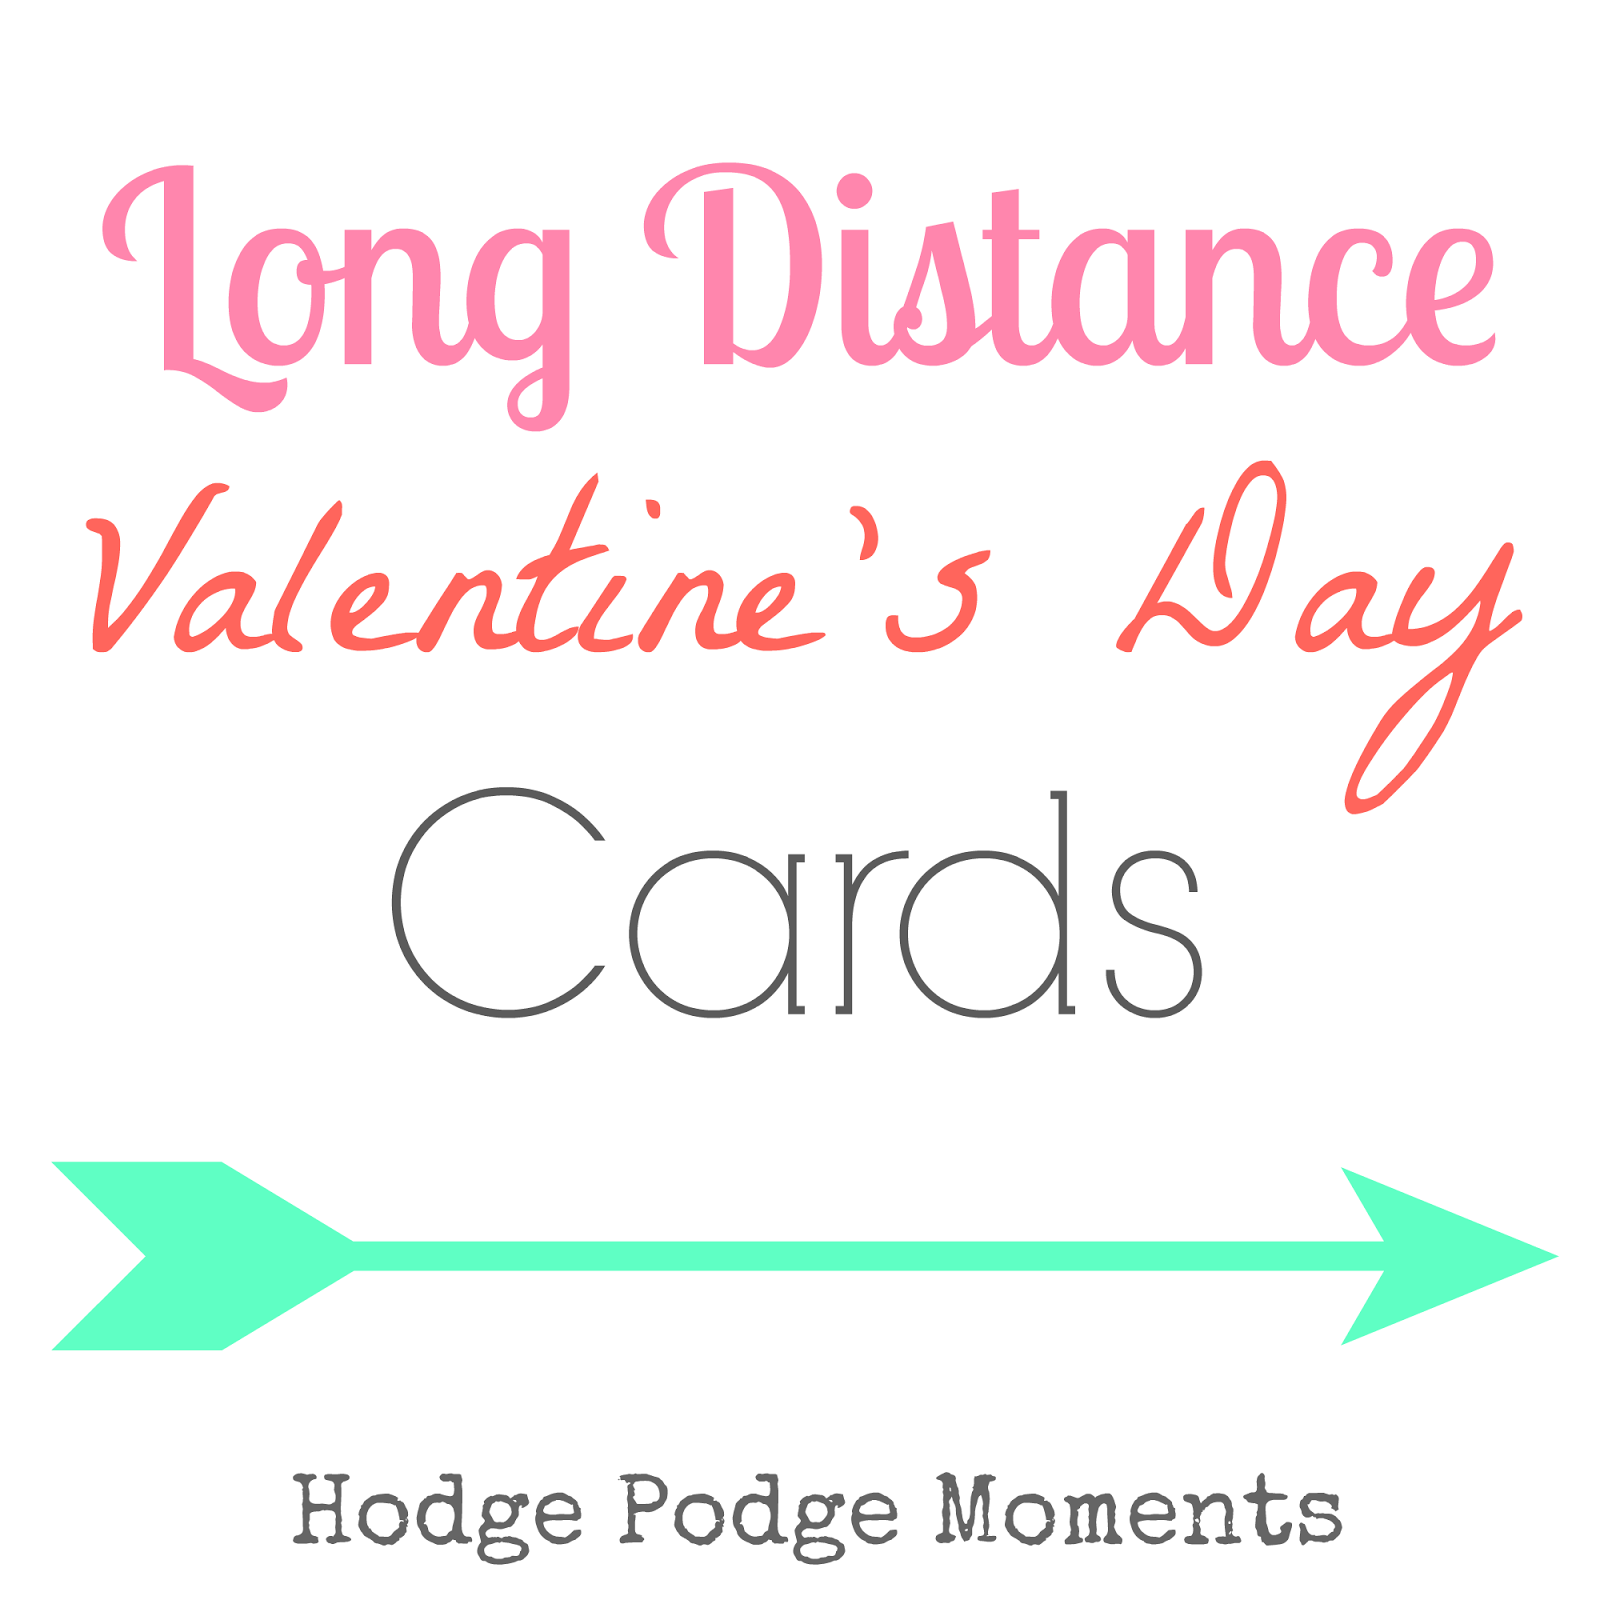 Long Distance Valentine's Day Cards